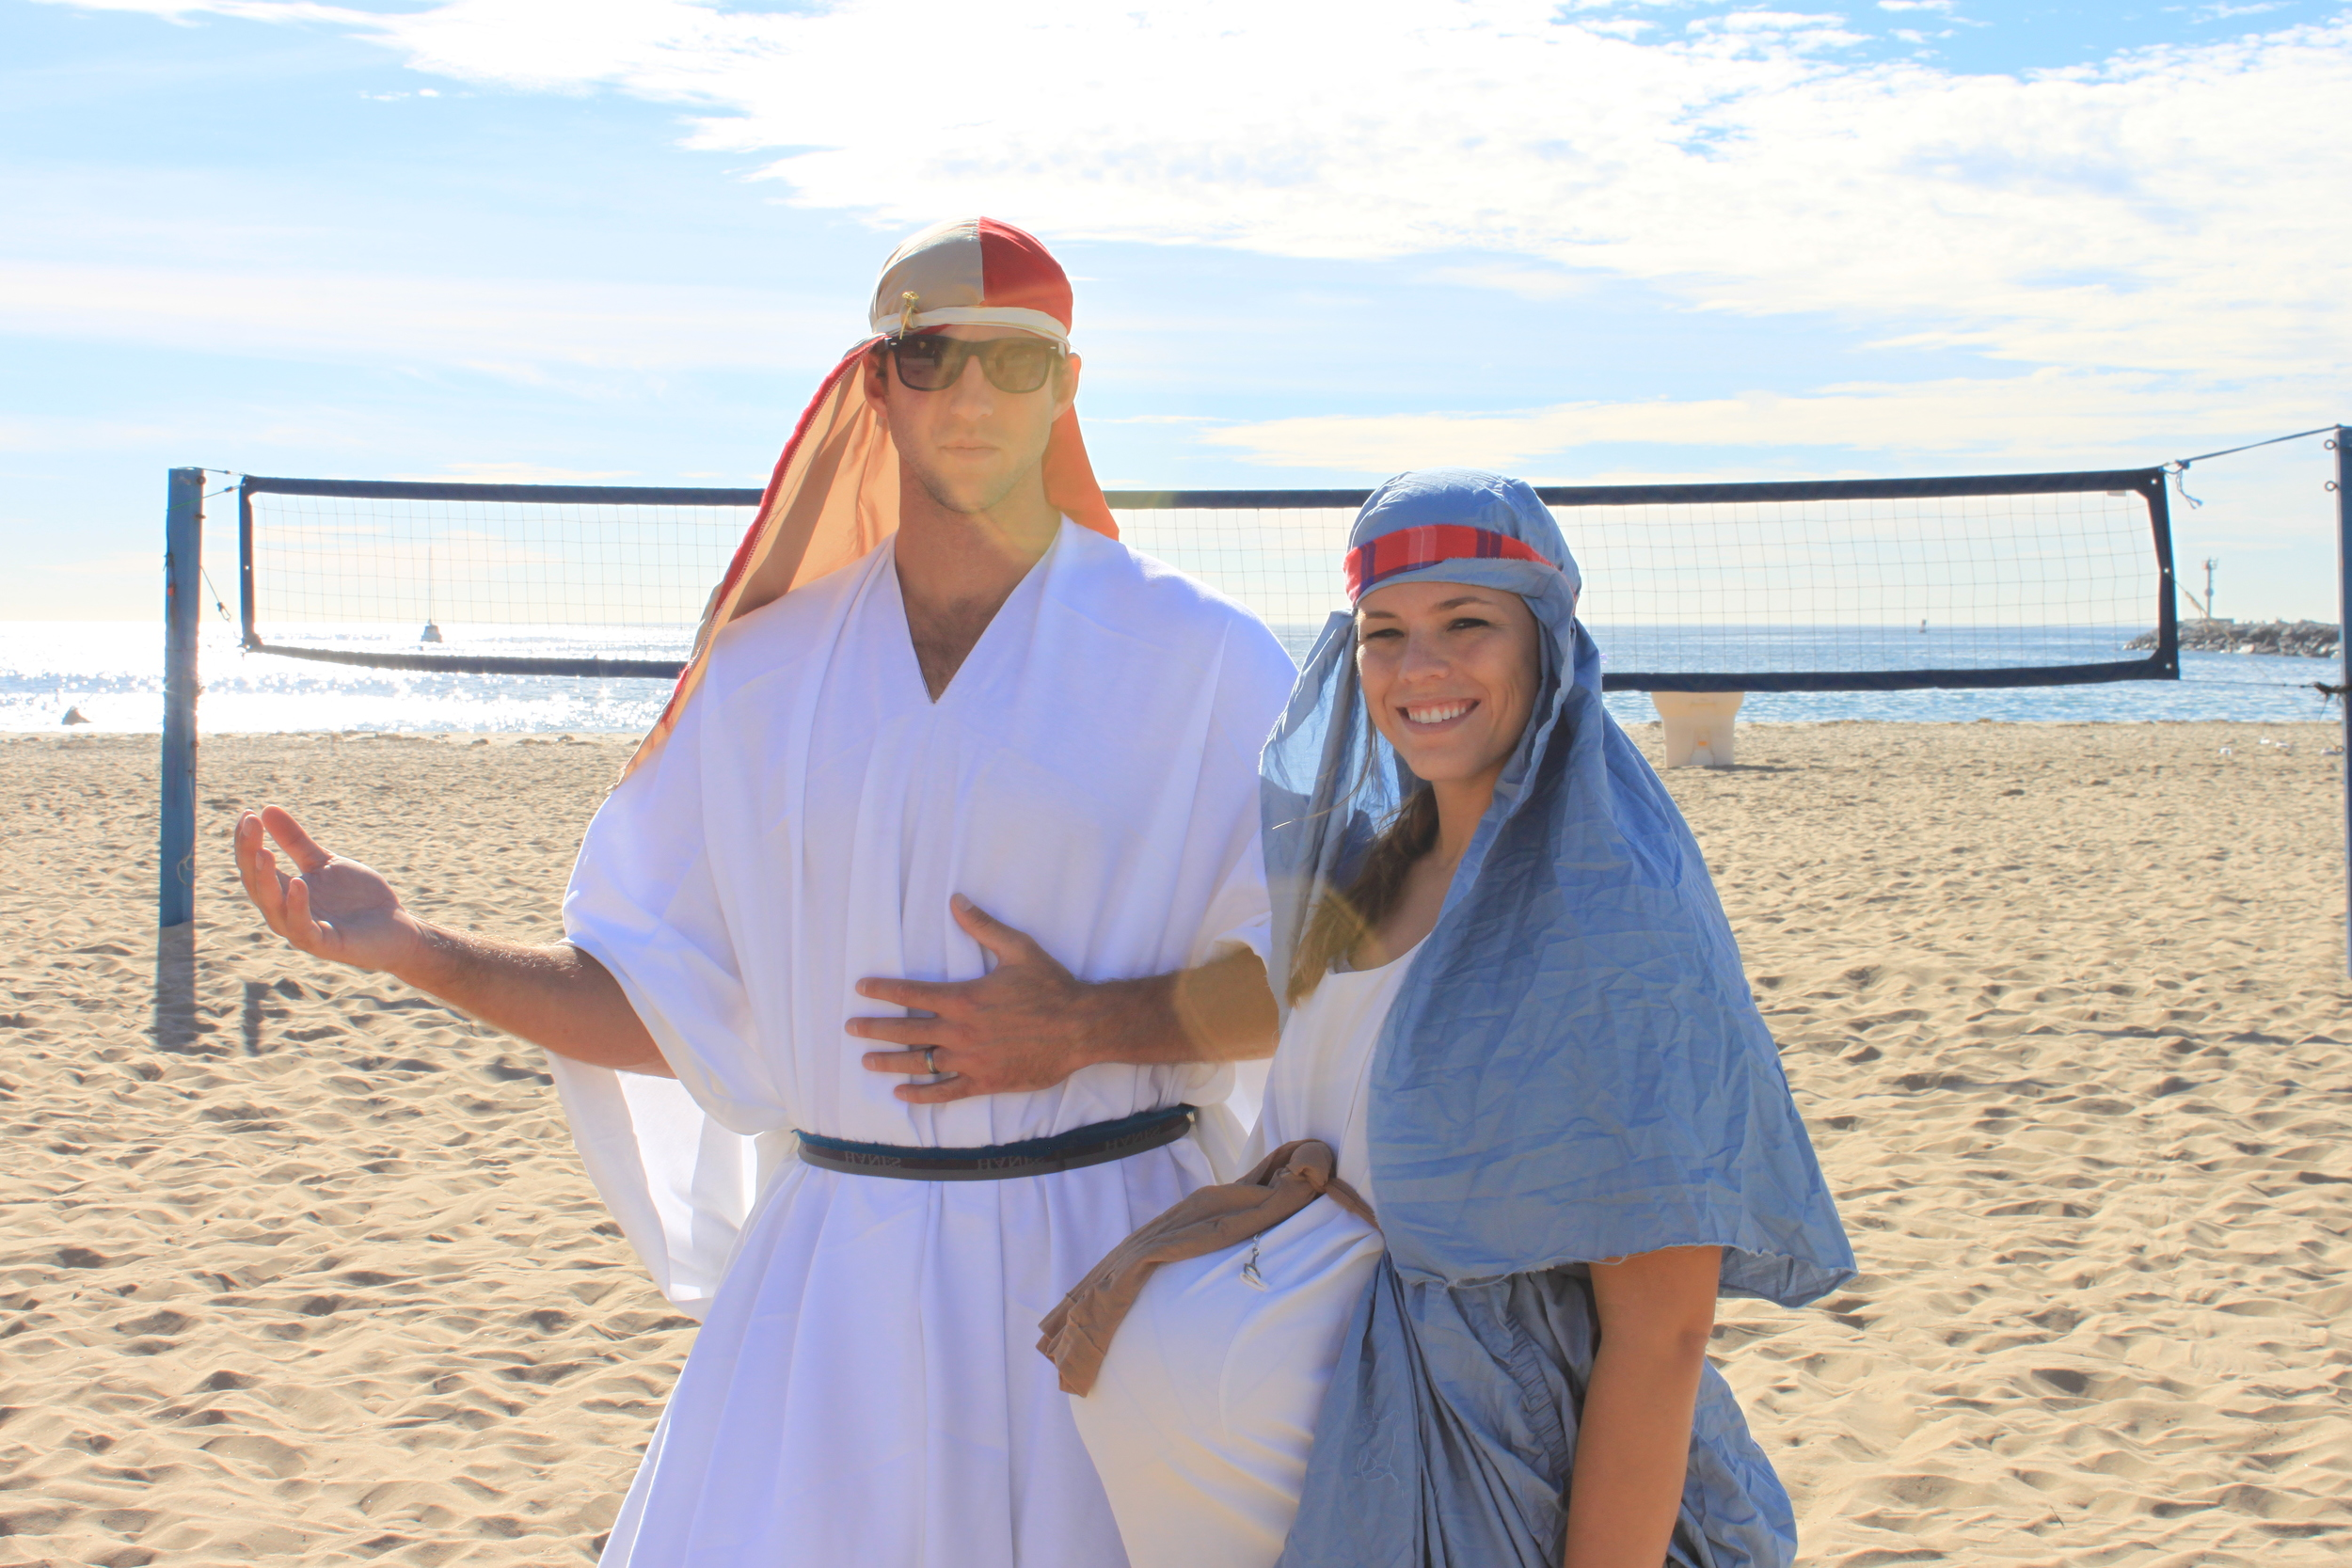 One of the reasons I truly love my job is because I get to make Fellowship of Christian Athletes Volleyball the best place to work. Recently, this has included a staff day in which we piled in the car, headed to Goodwill, and had a beach volleyball tournament dressed as our favorite duos. Here Mary (Christen Clements) and Joseph (Graeme Cowgill) pose for a pre-tournament photo shoot.